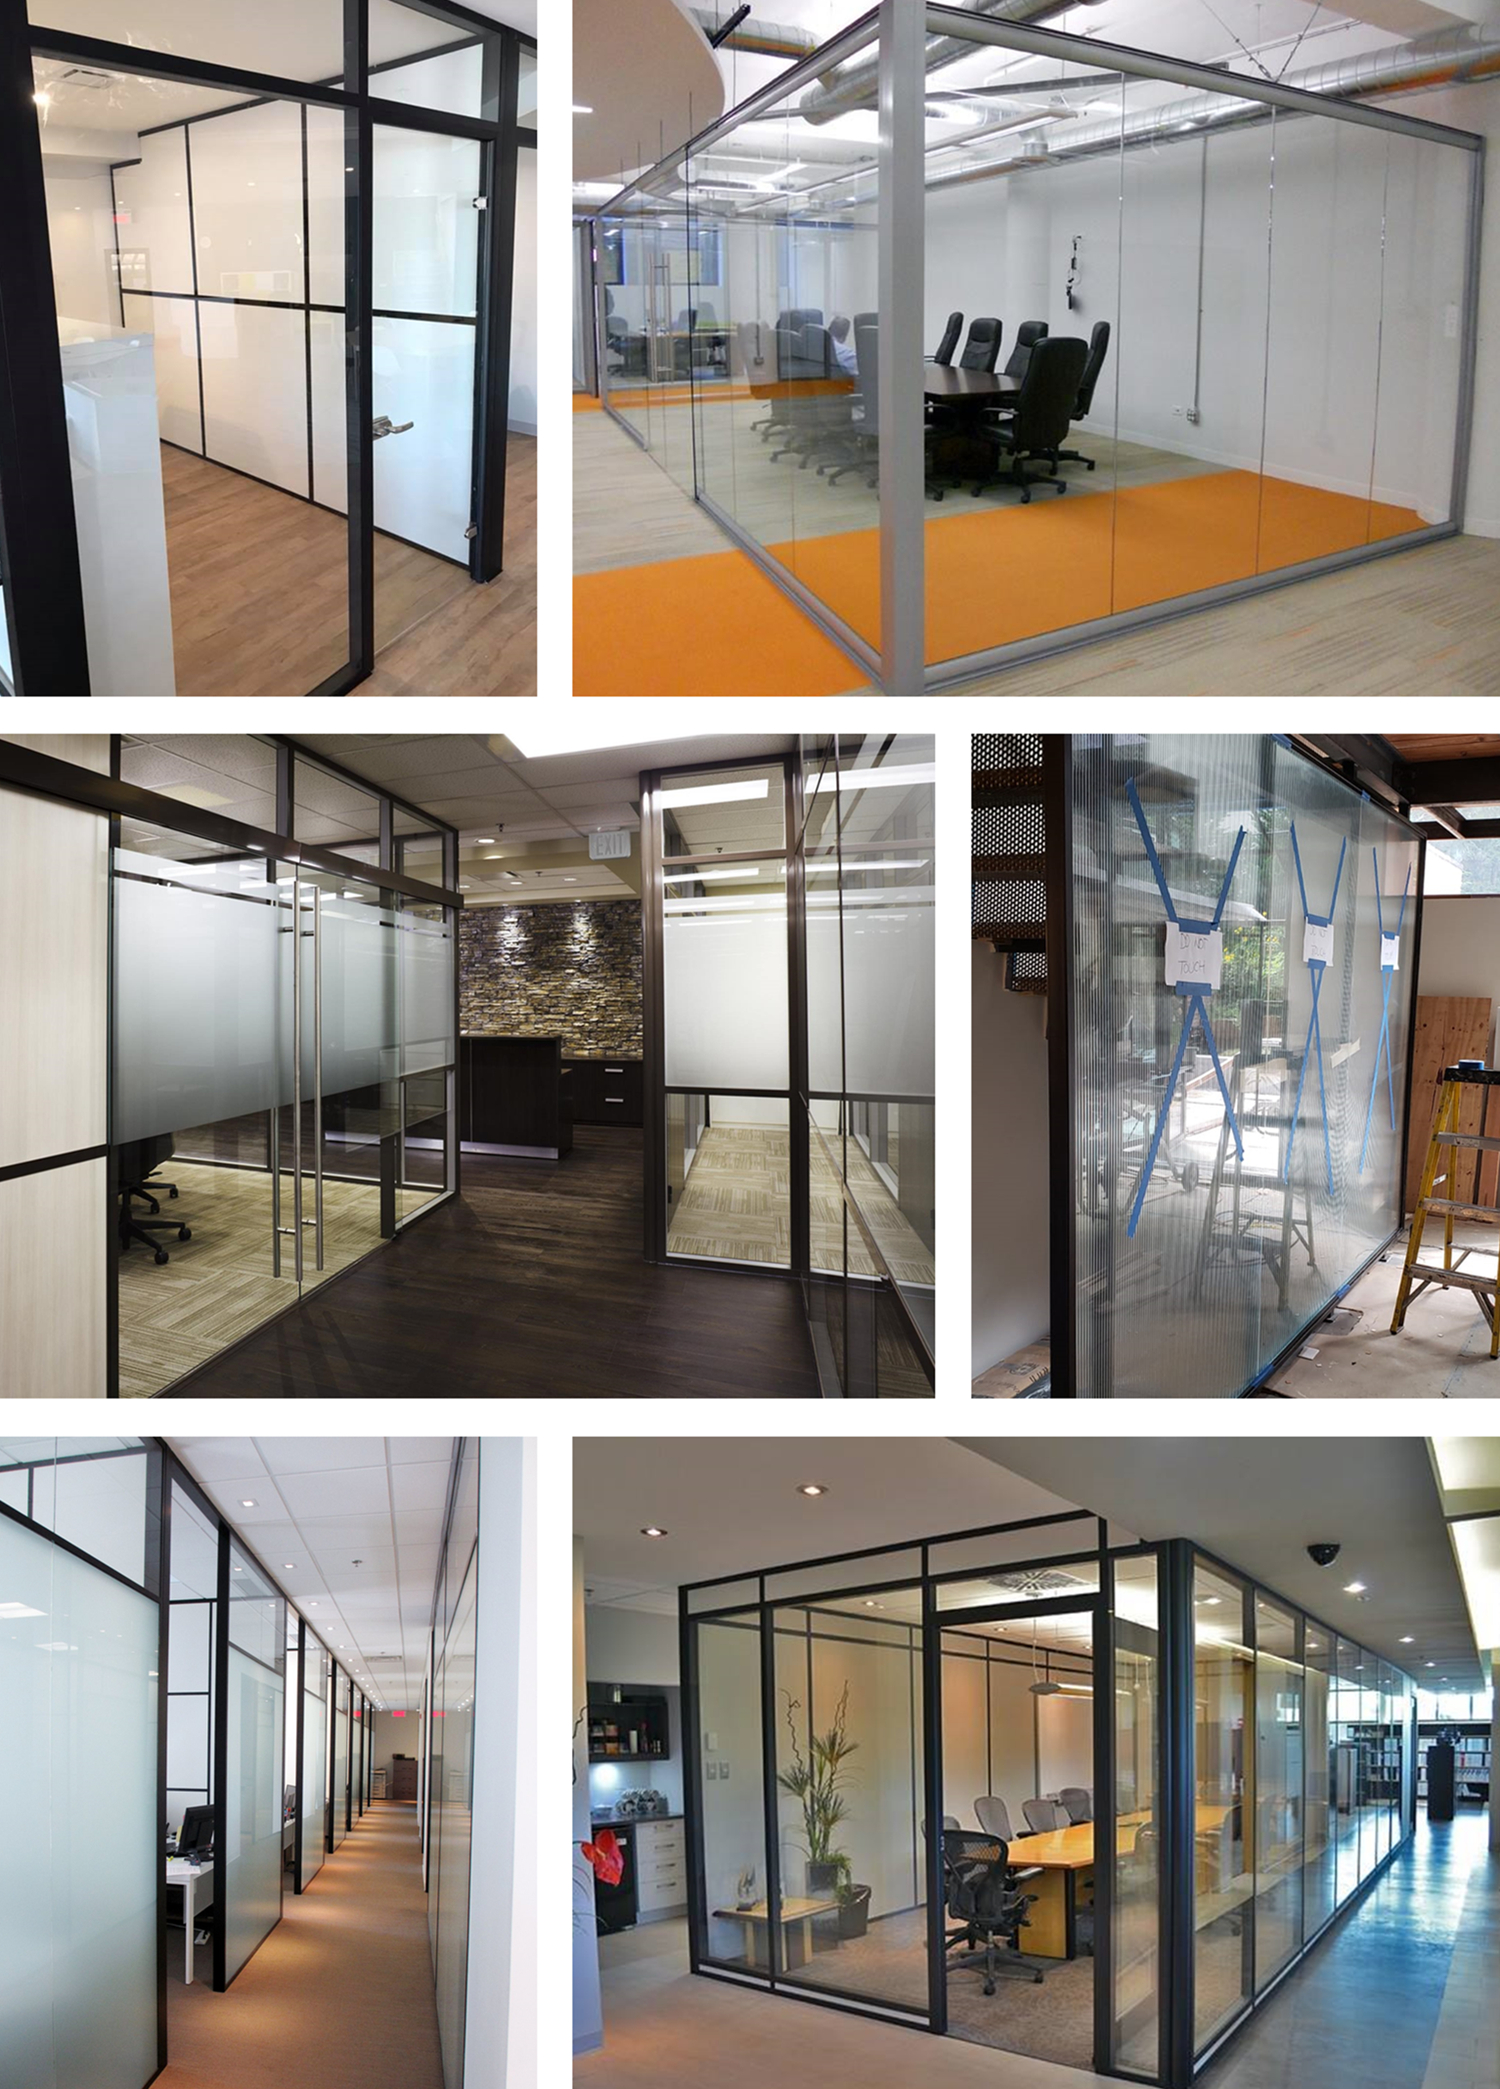 Tempered glass laminated glass clear frosted decorative PDLC switchable smart glass partition wall